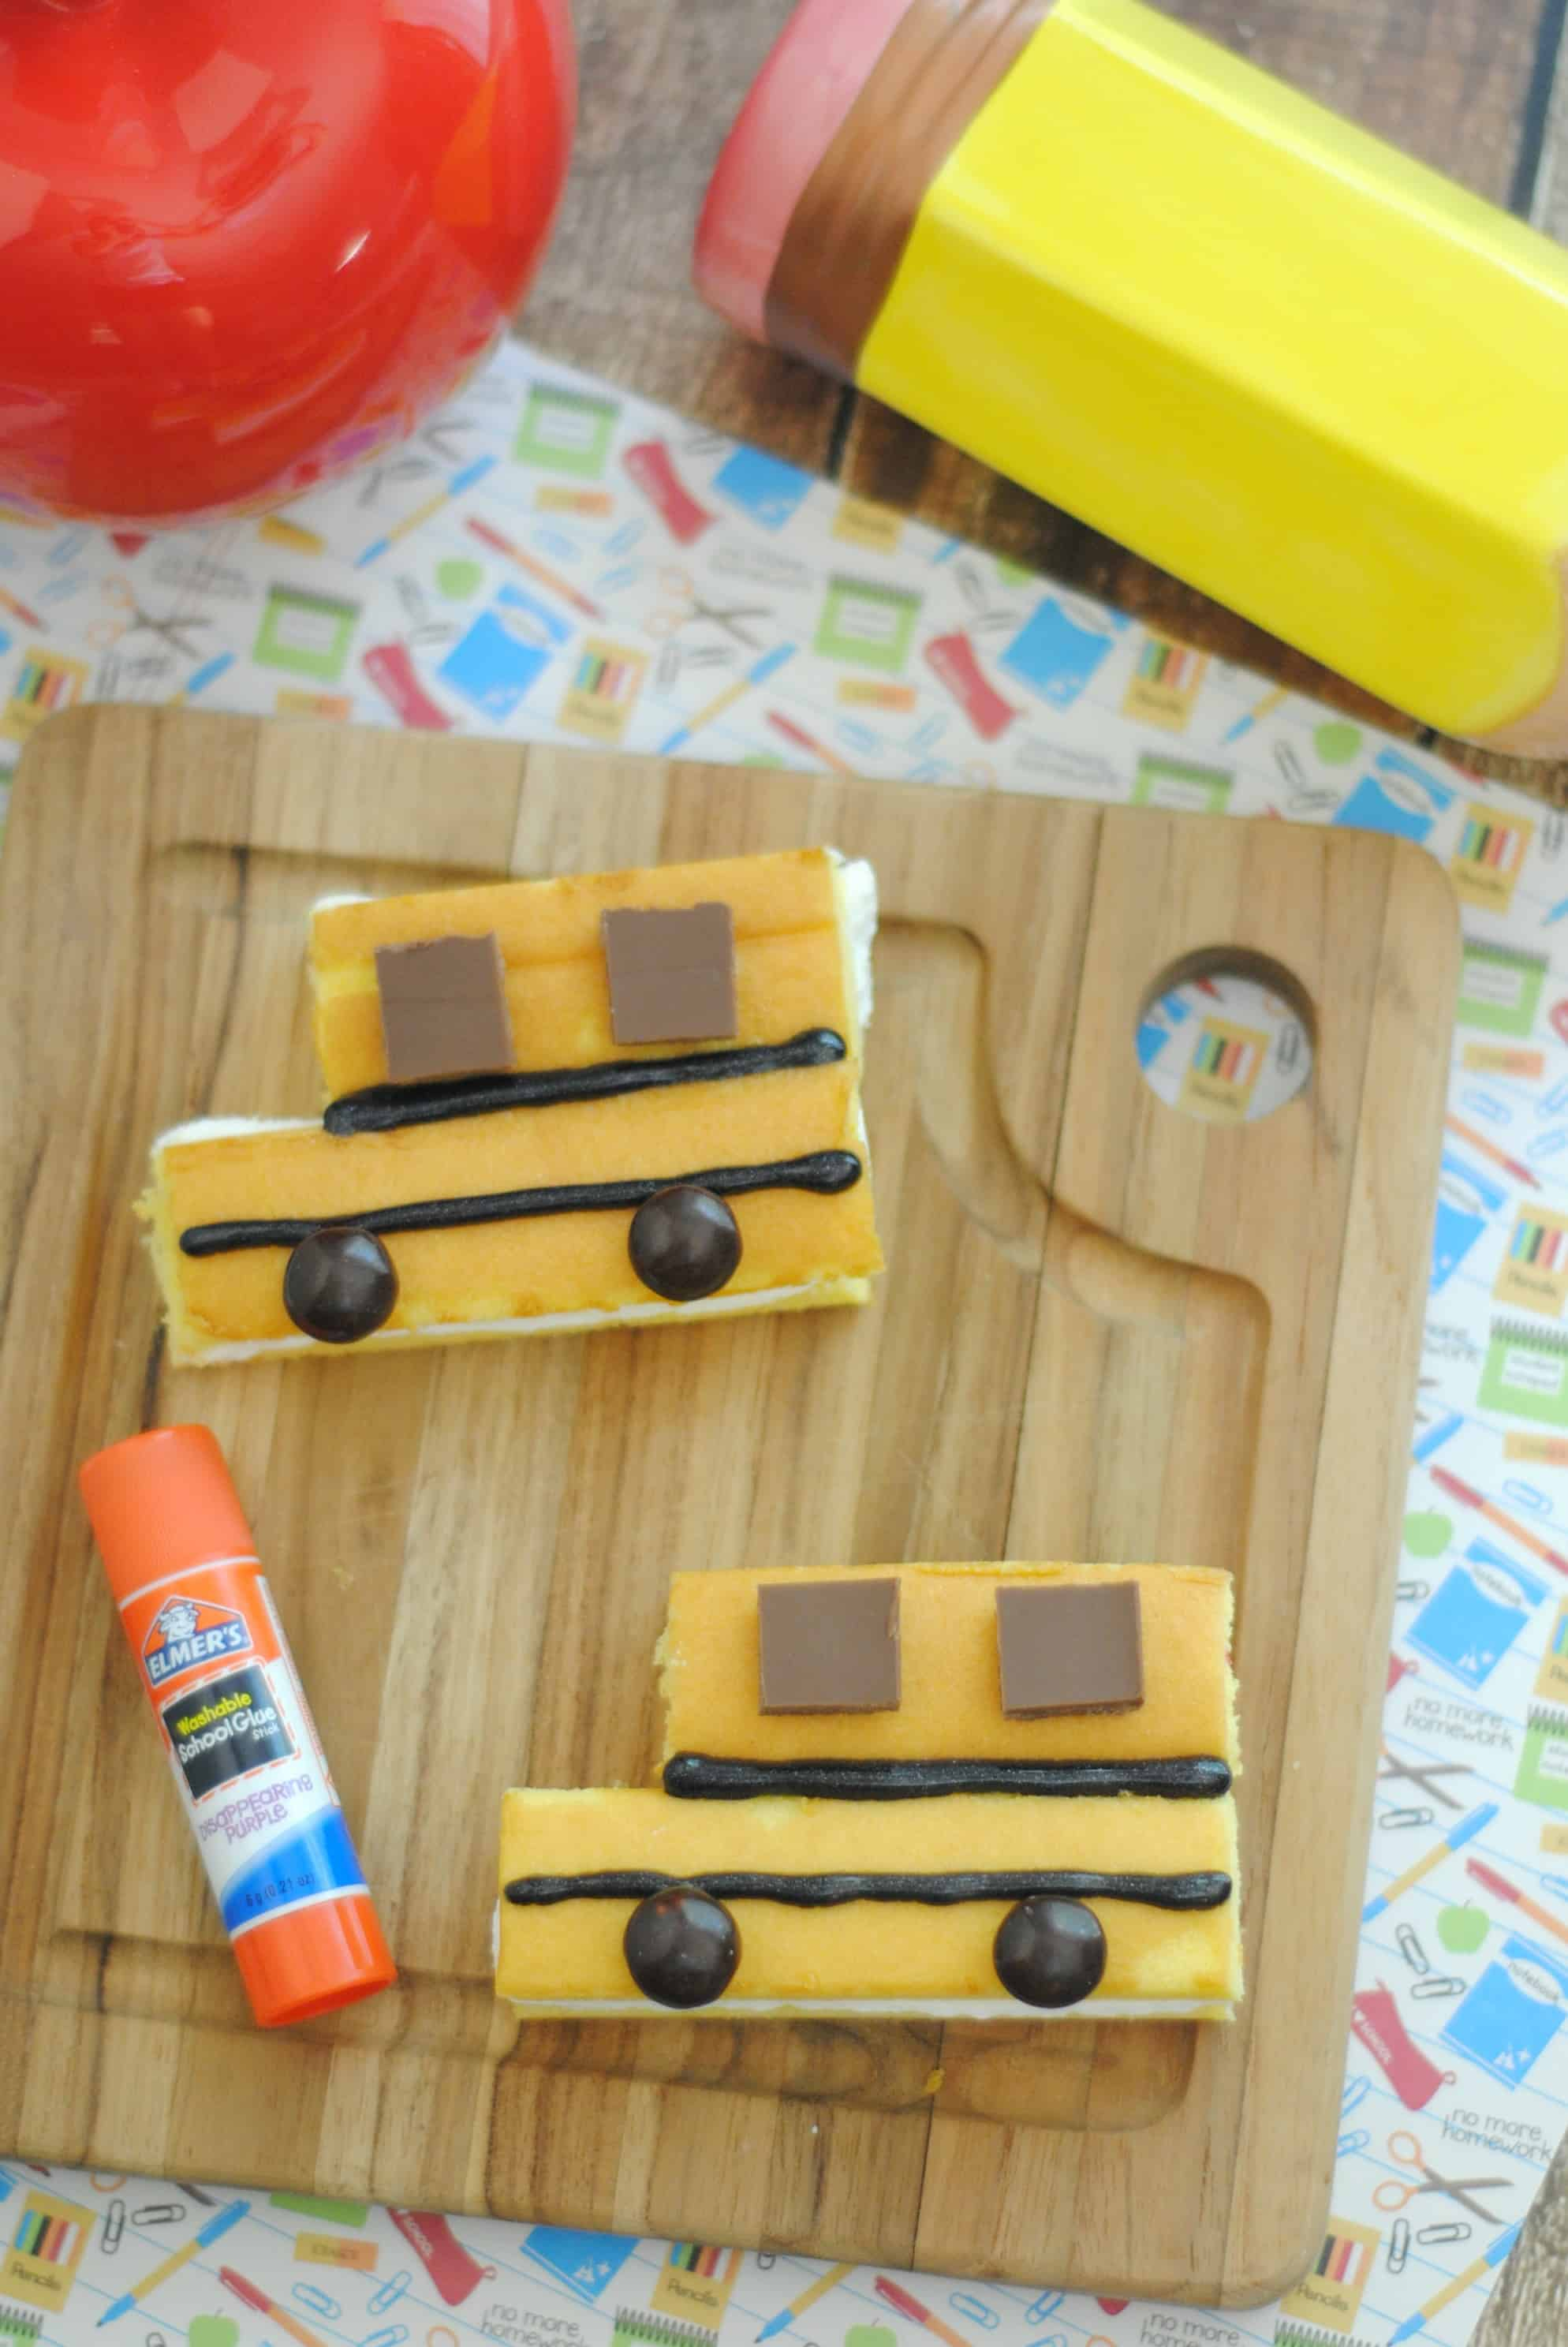 Back to school treat recipe shaped like school buses using little debbie snack cakes.